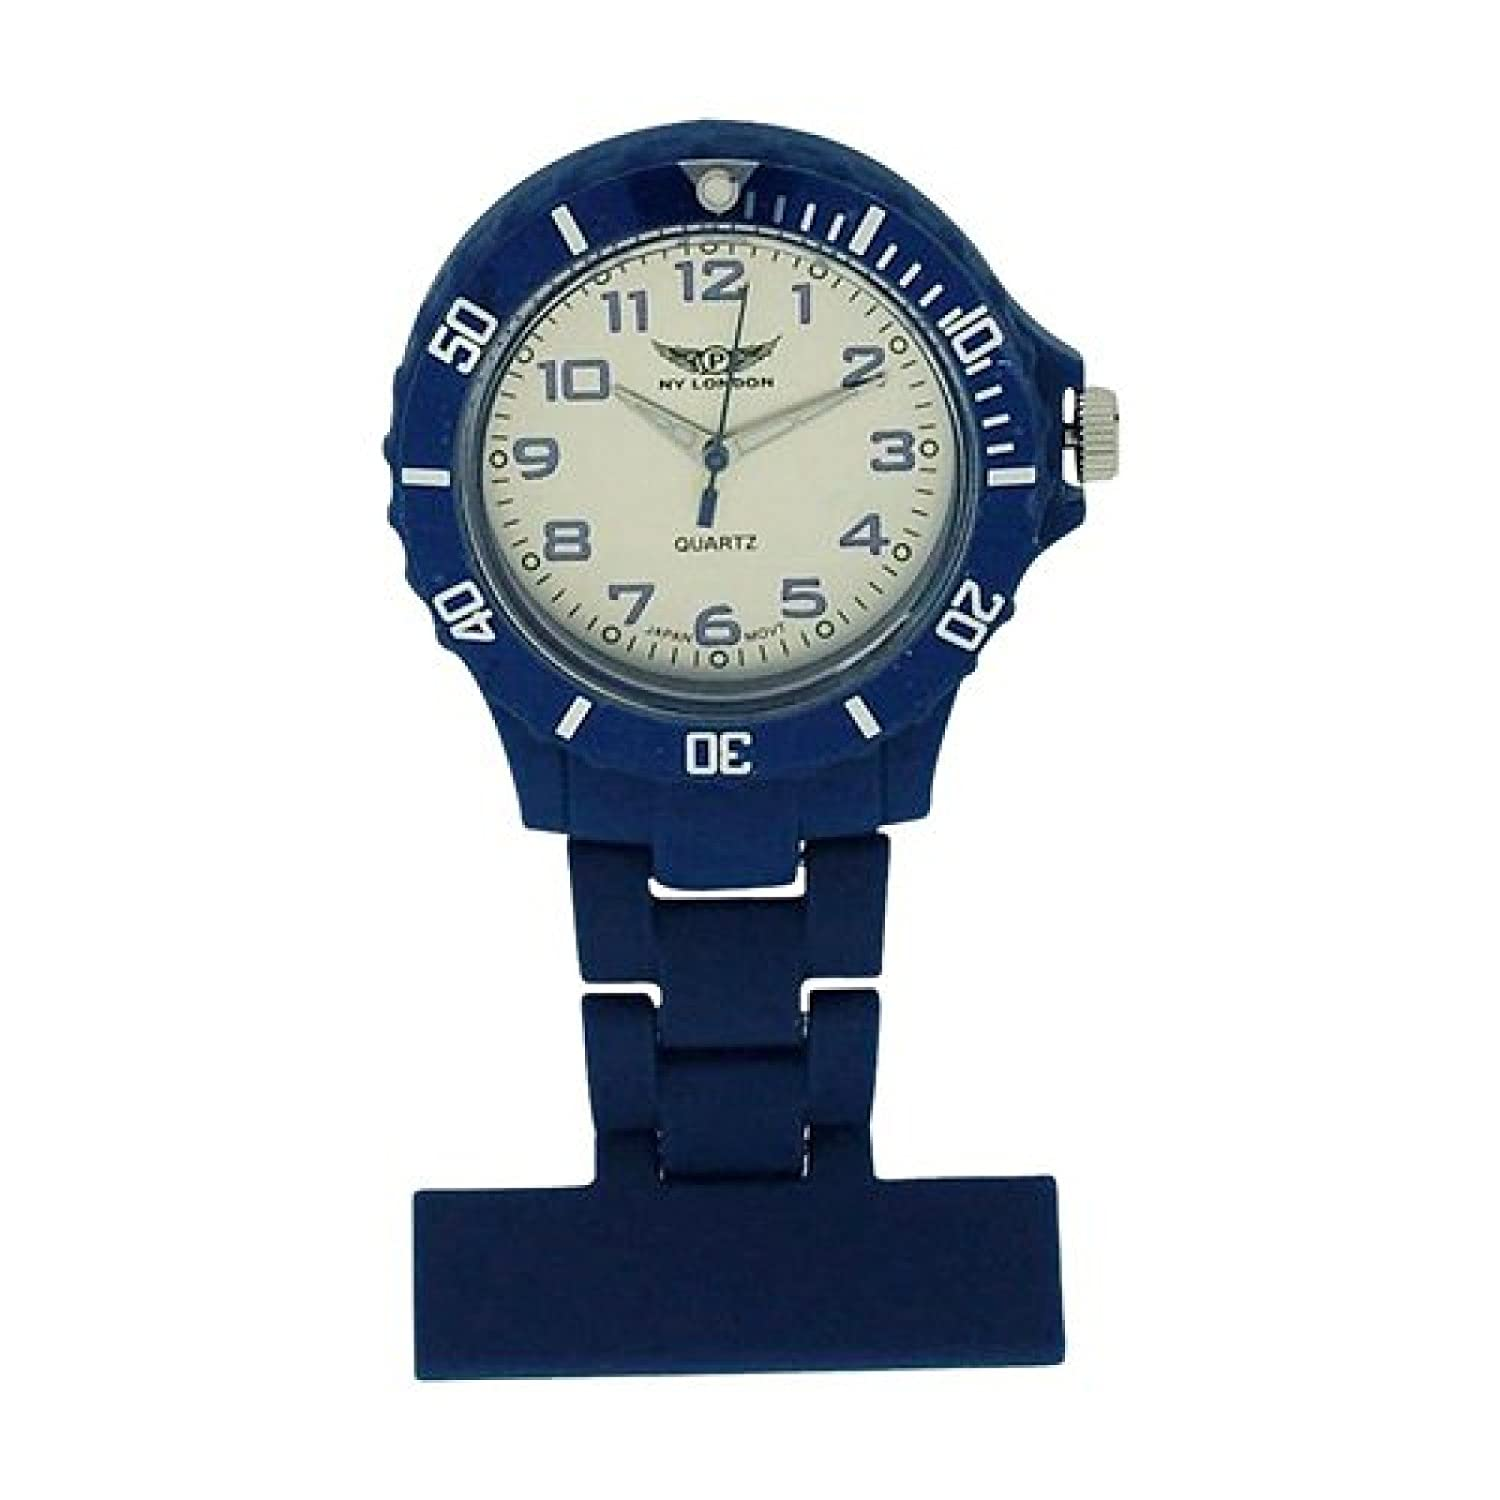 Prince London NY New York Rubberised Plastic Nurses Fob Watch With Pin